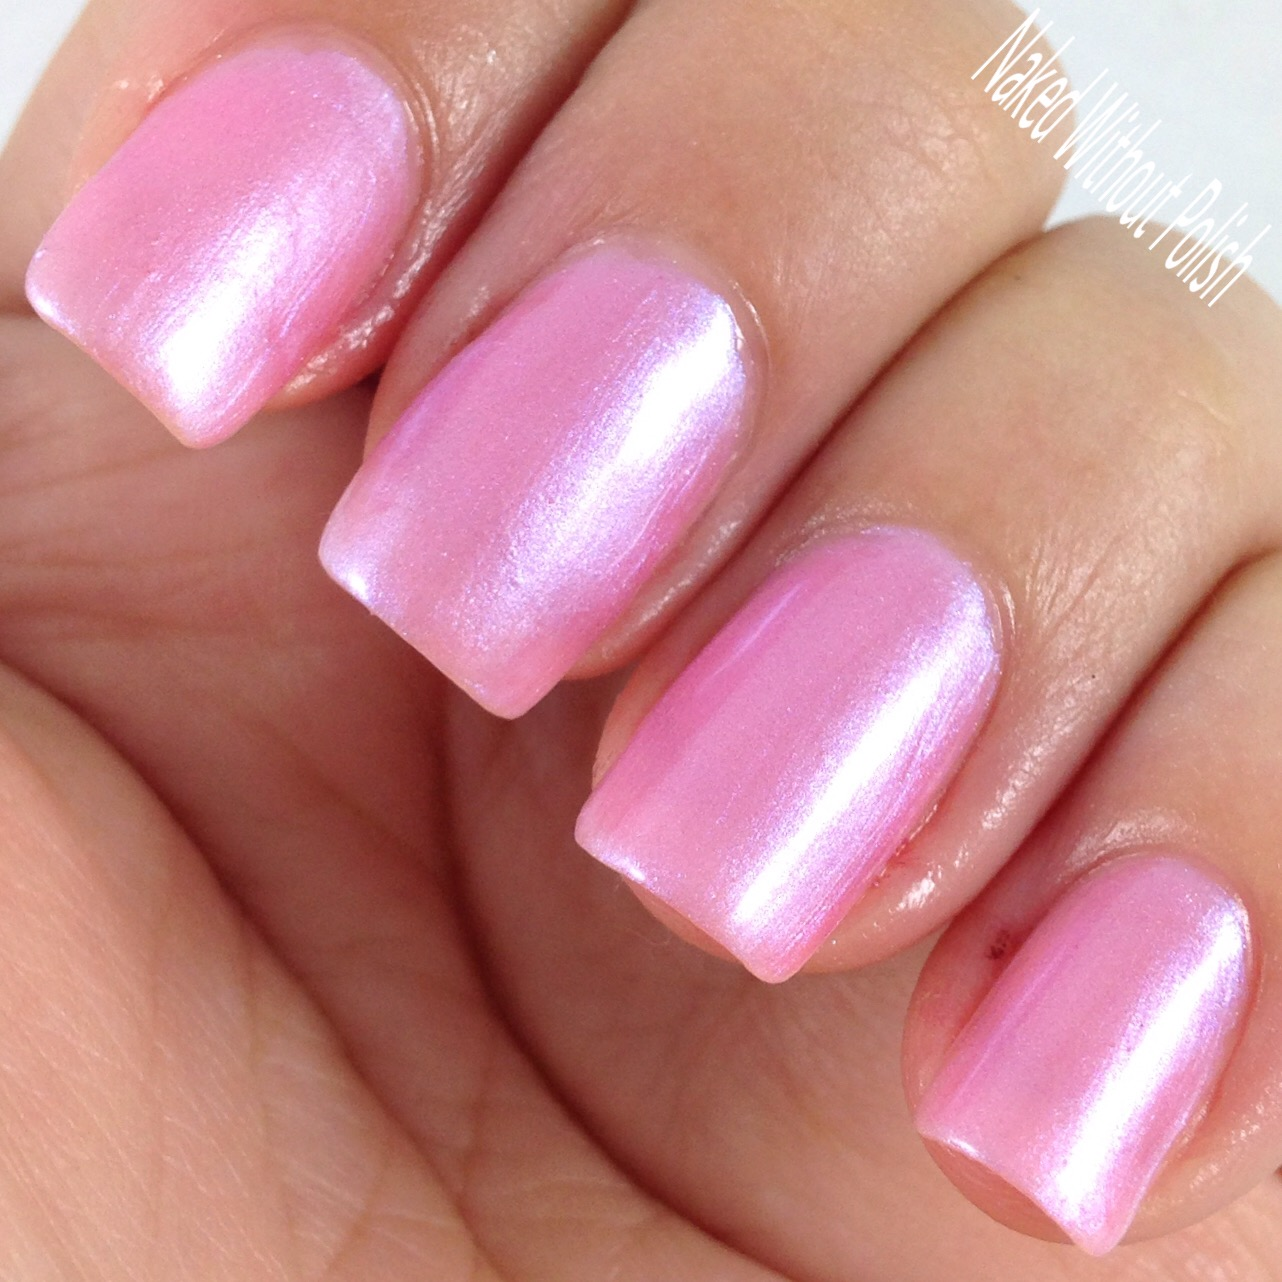 My-Stunning-Nails-Strawberry-Macaroon-7